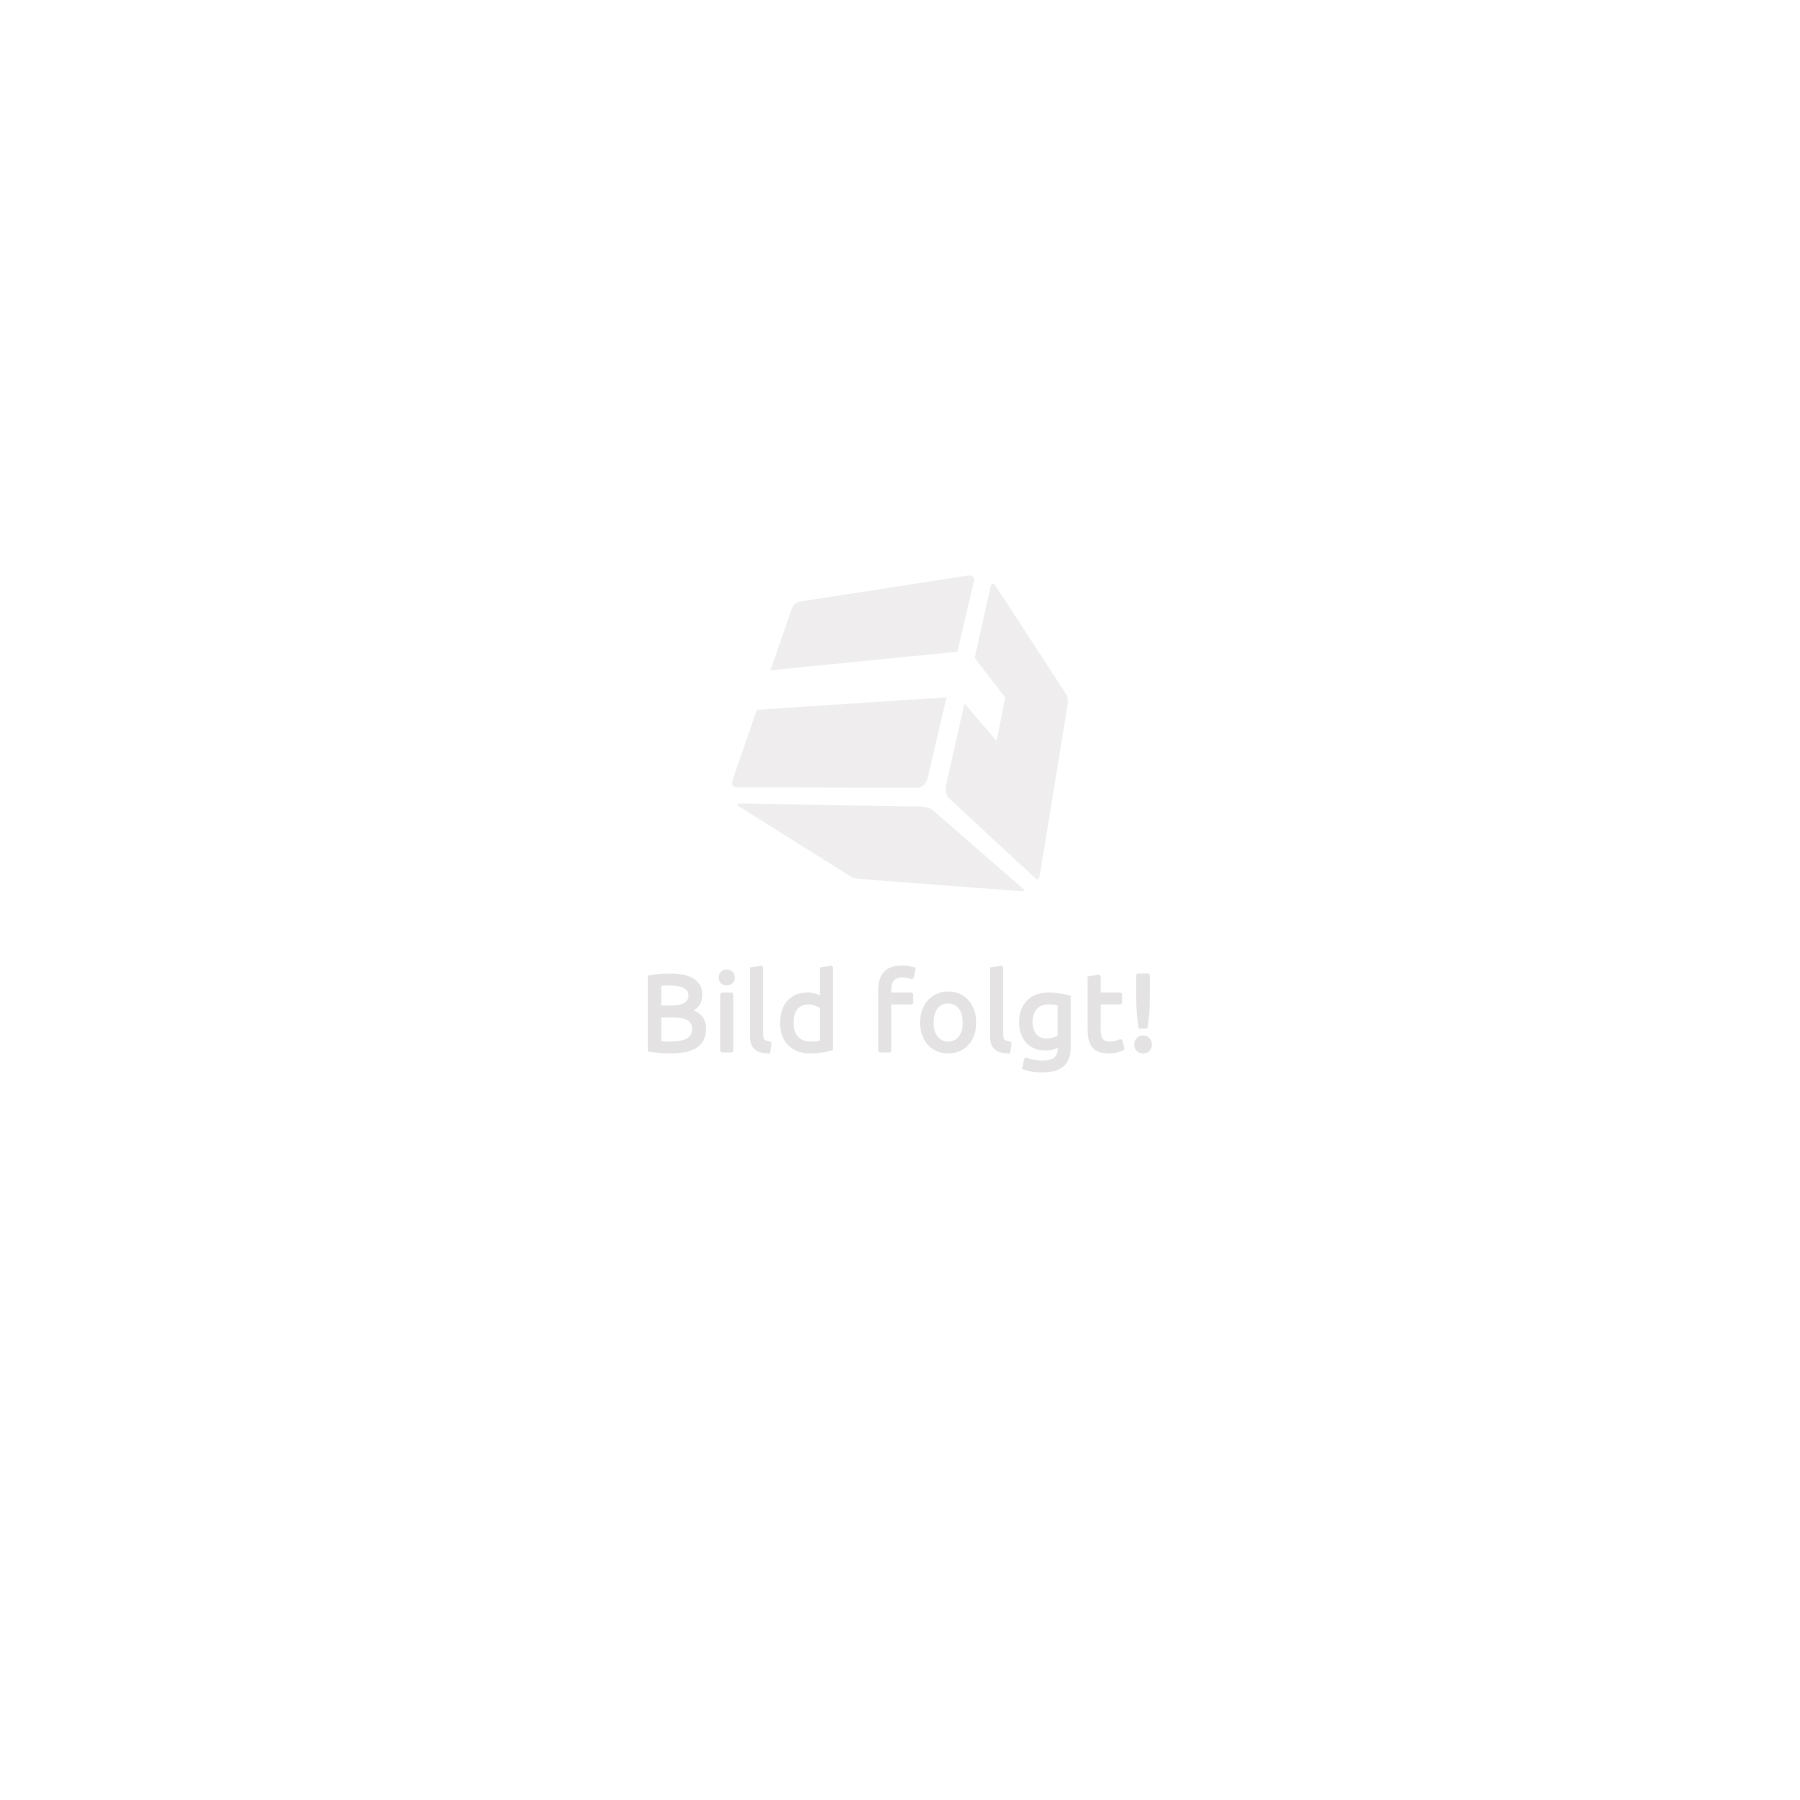 Bearing puller / press 27 PC tool set